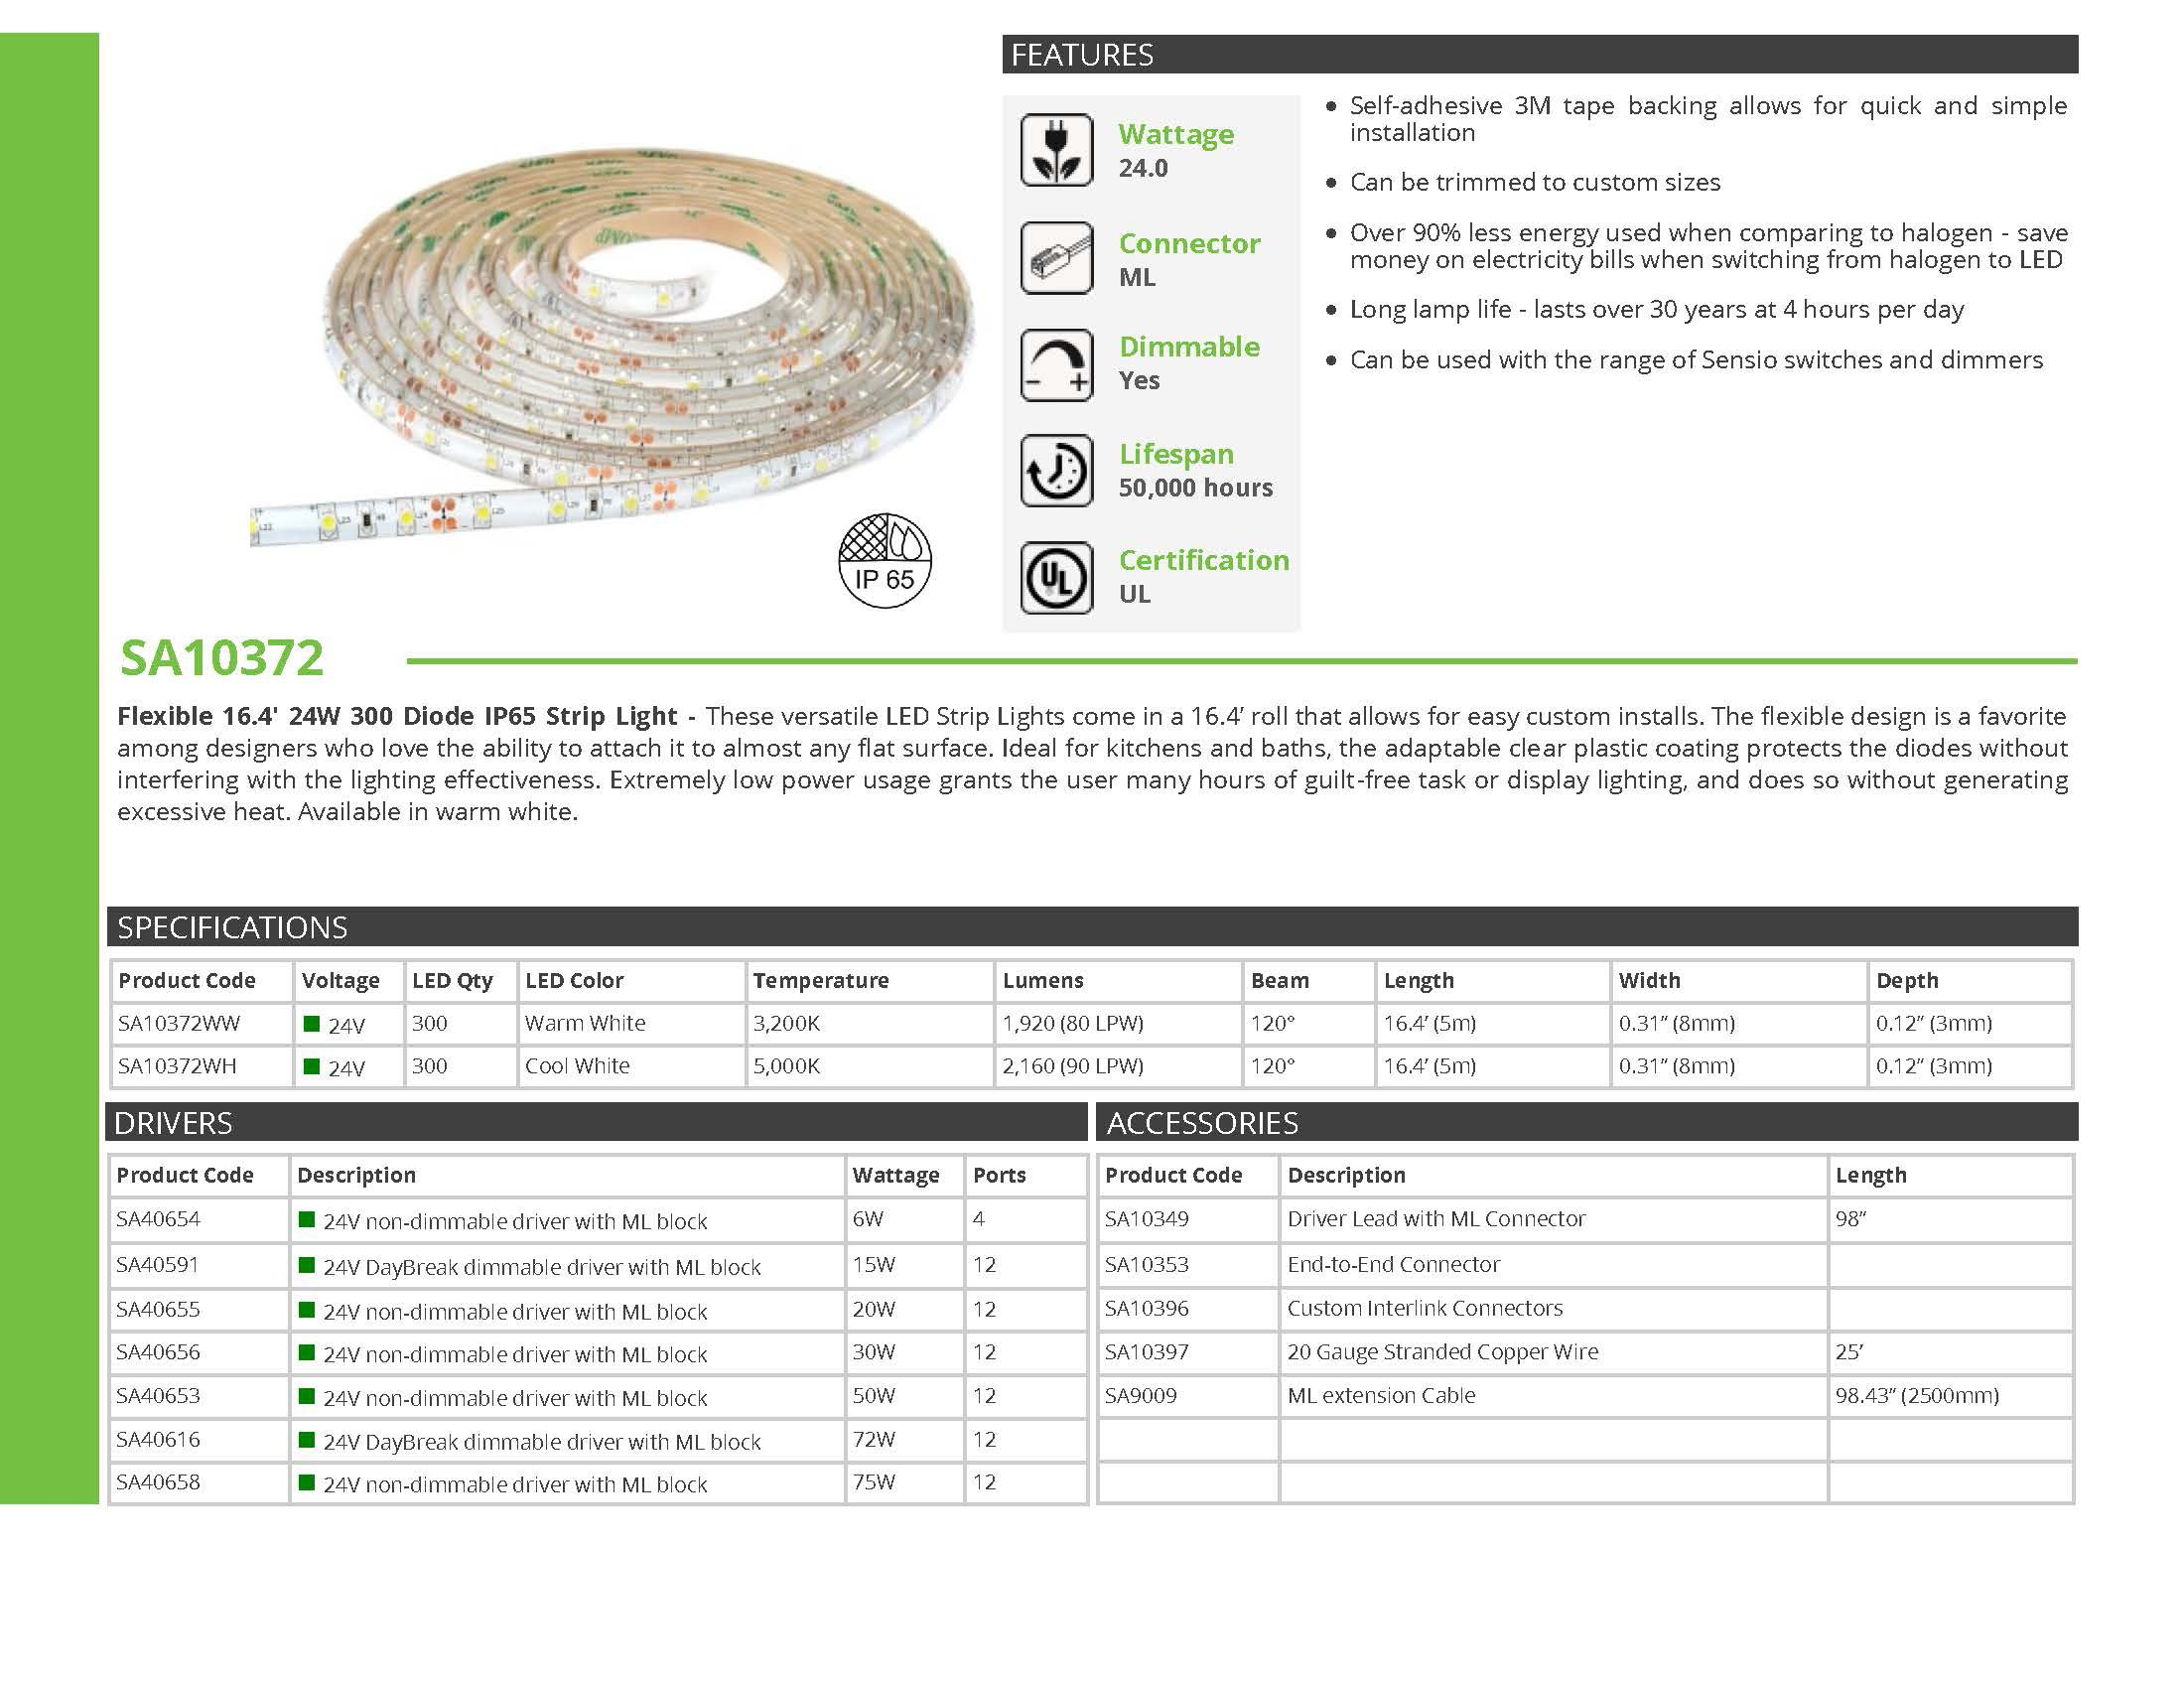 Transolid SA10372WH Sensio LED 24V 24W 300D Ip65 Flexible Strip Light, 196.85'', Warm White